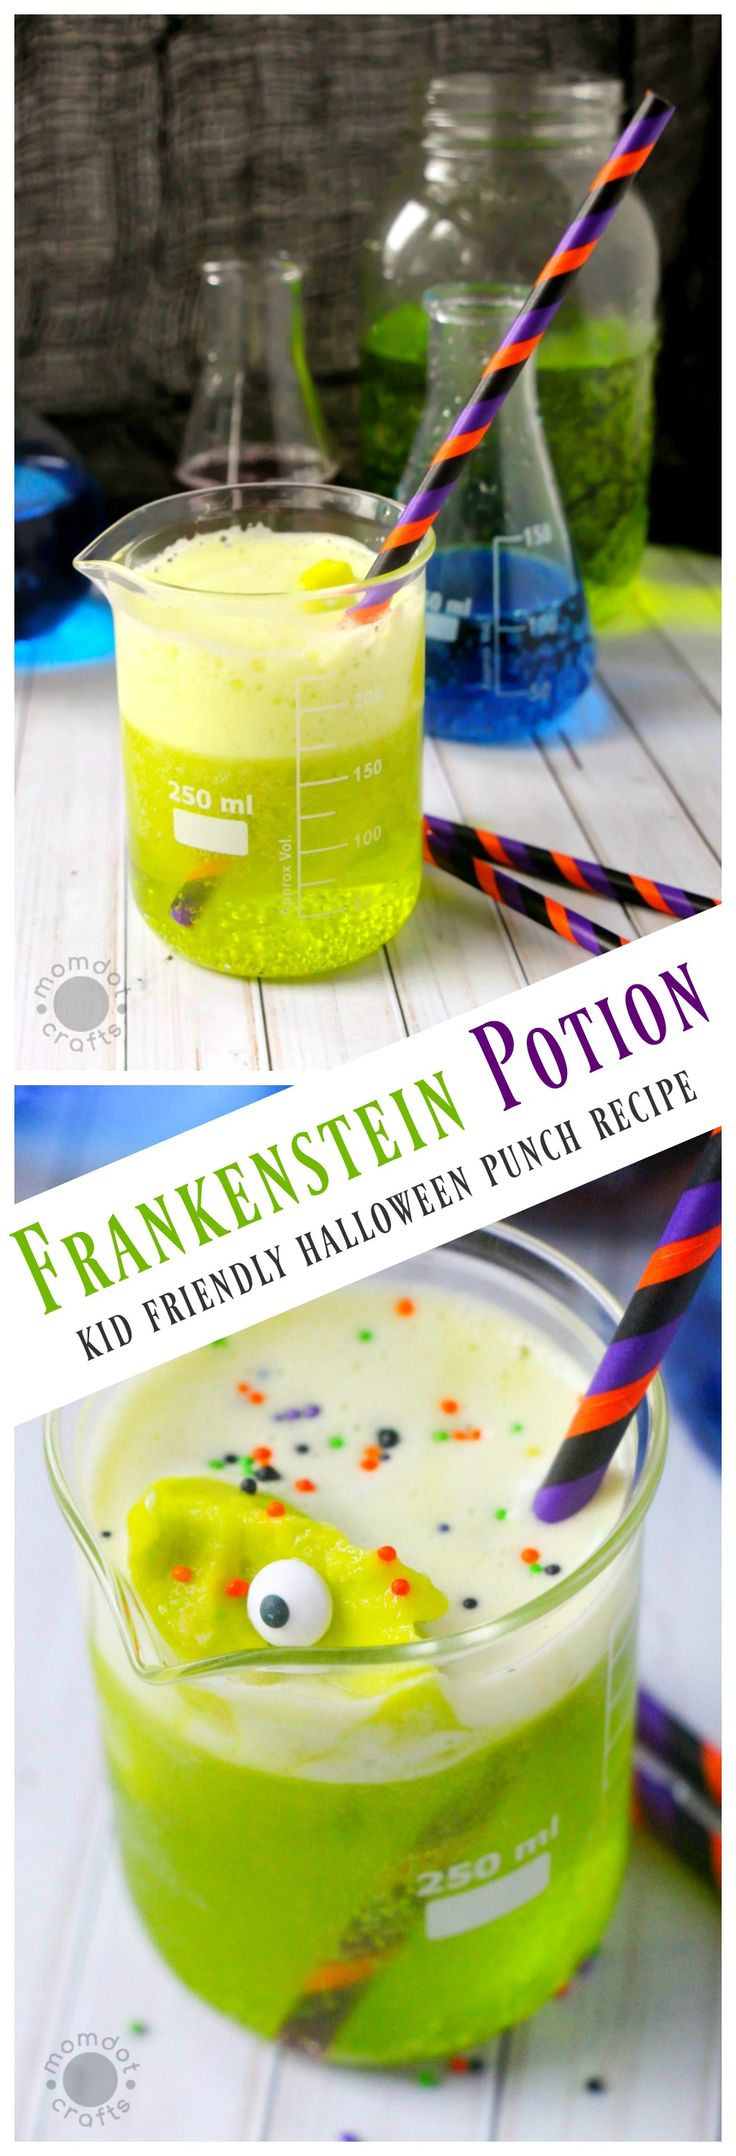 frankenstein punch kid friendly halloween punch recipe that doubles as polyjuice punch for harry potter - Punch Recipes For Halloween